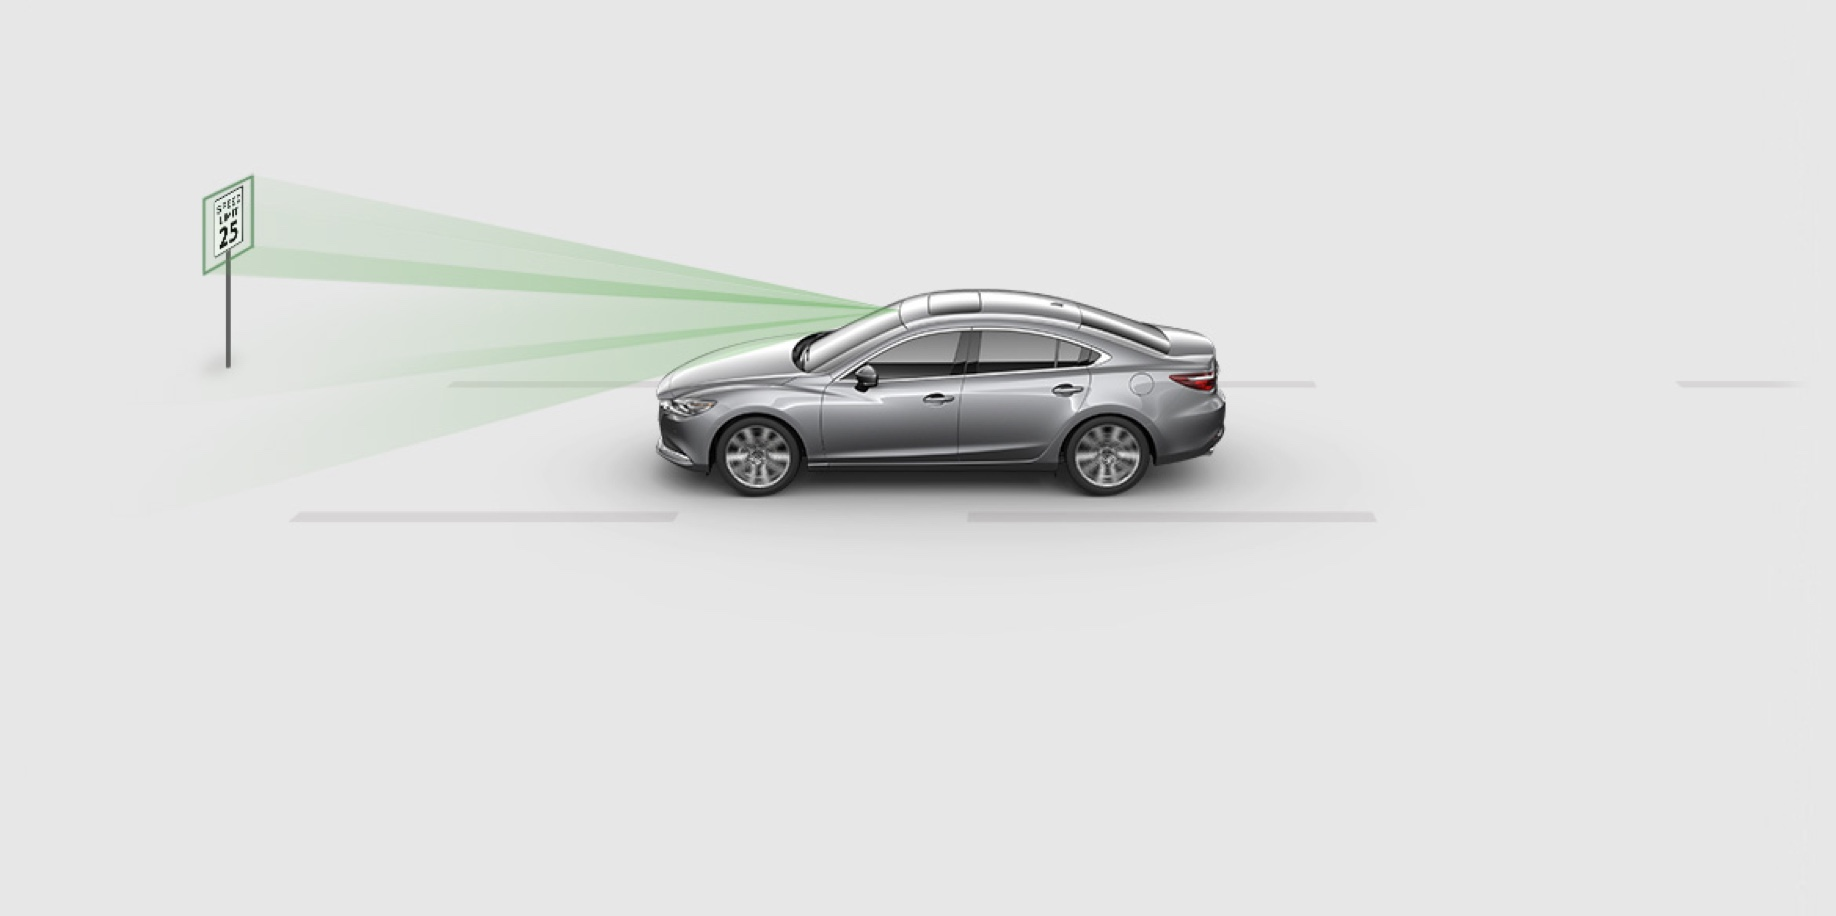 TRAFFIC SIGN RECOGNITION SYSTEM - Mazda6